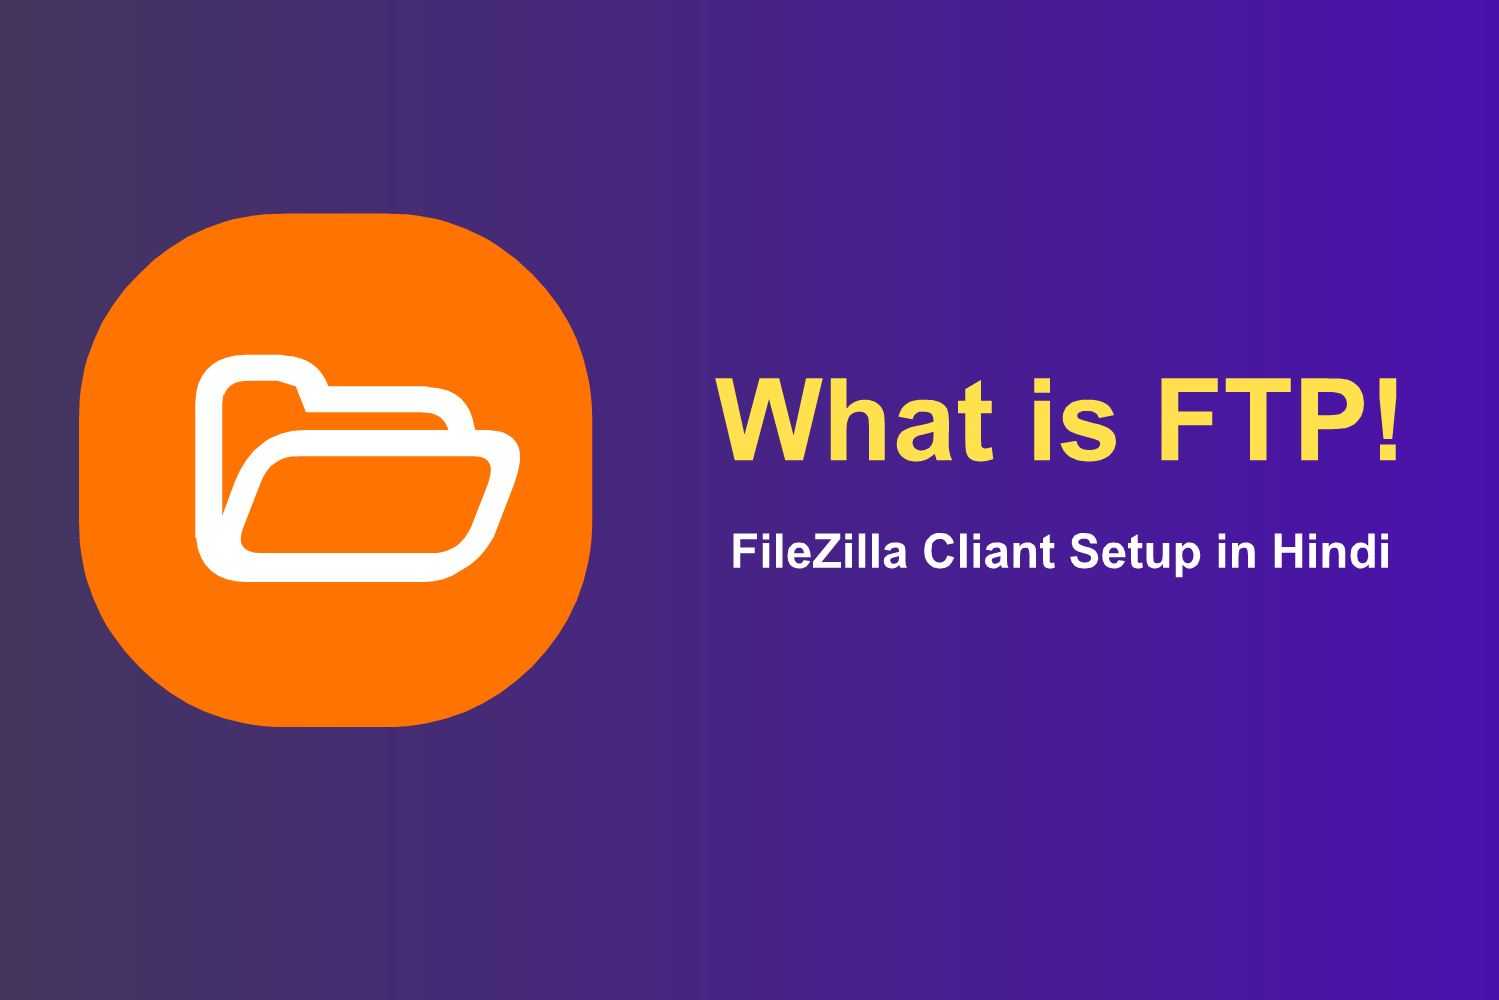 FTP Kya Hai? Filezilla Ko Setup Kaise Kare in Hindi